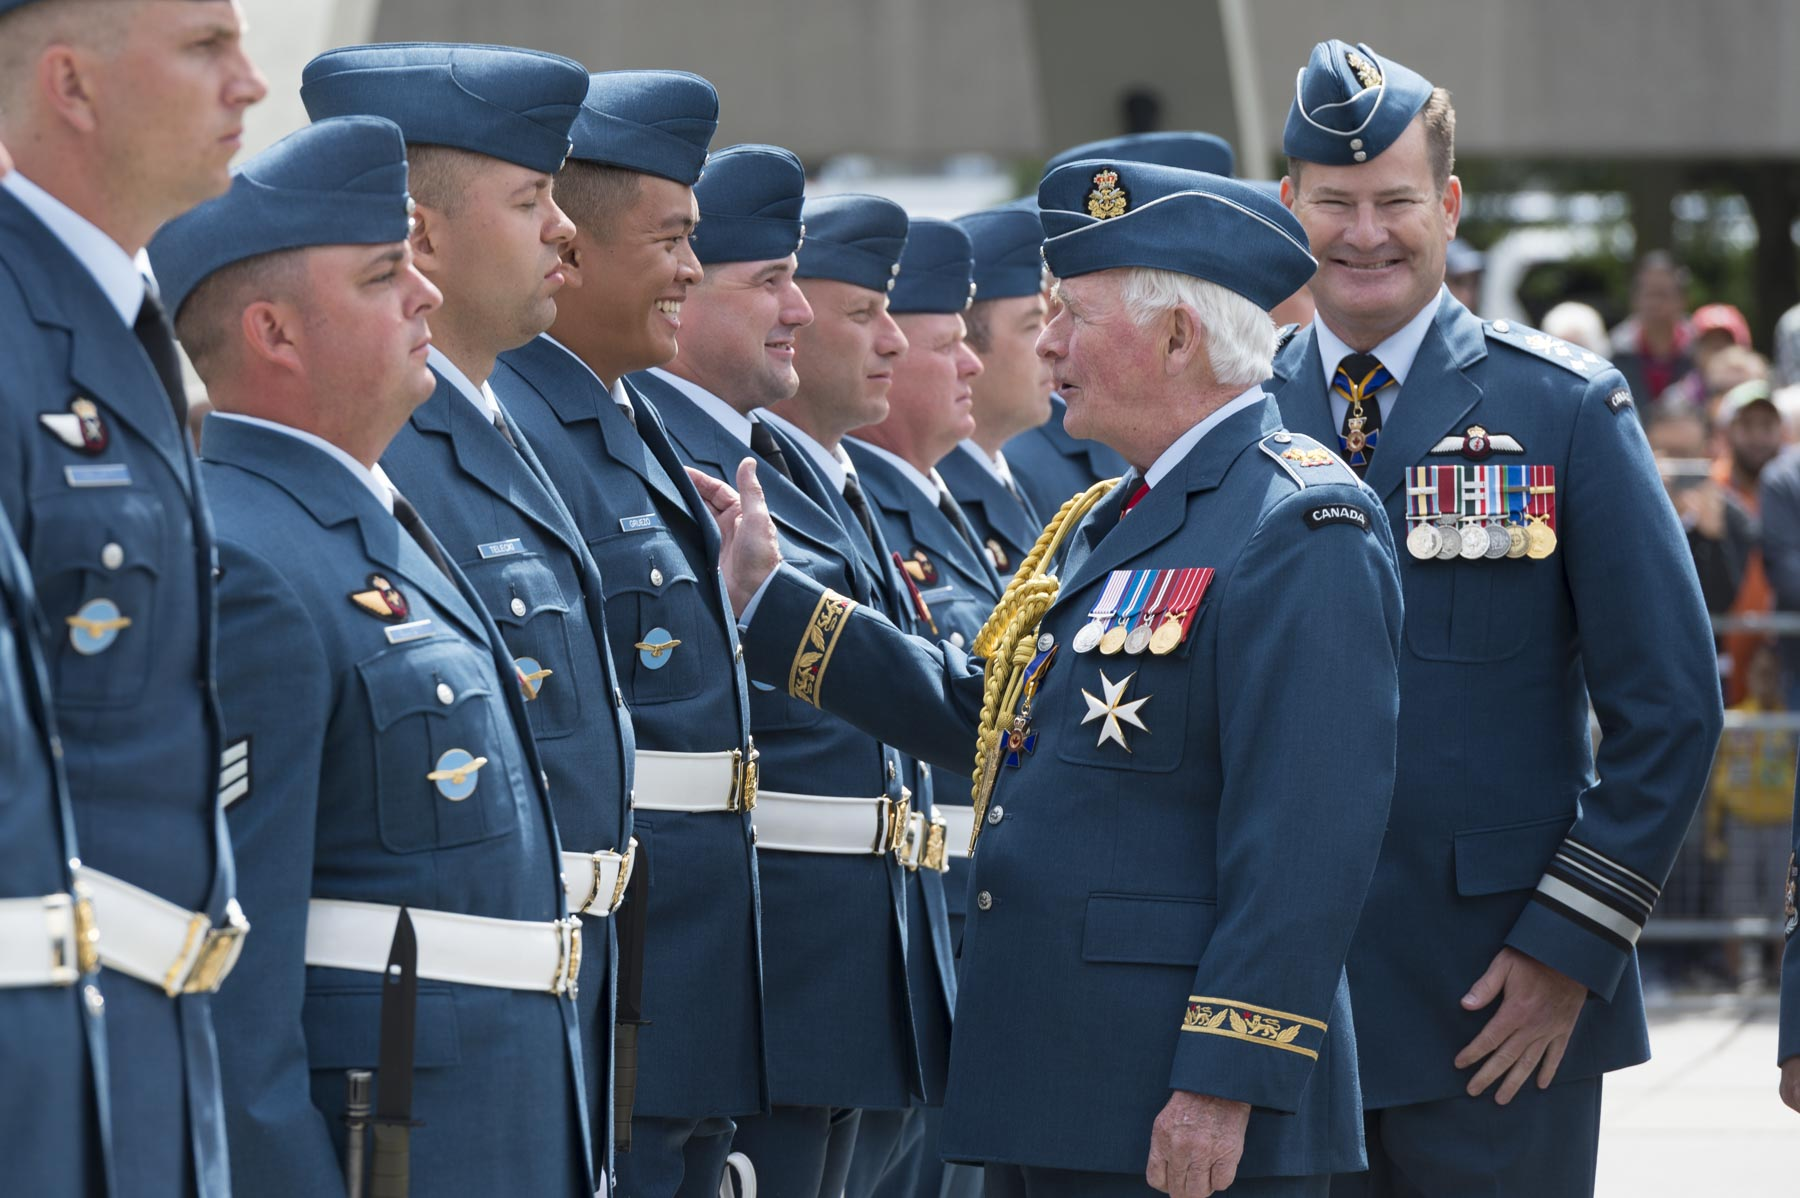 Upon arrival in Toronto, His Excellency presented the new colours to Royal Canadian Air Force (RCAF) members.